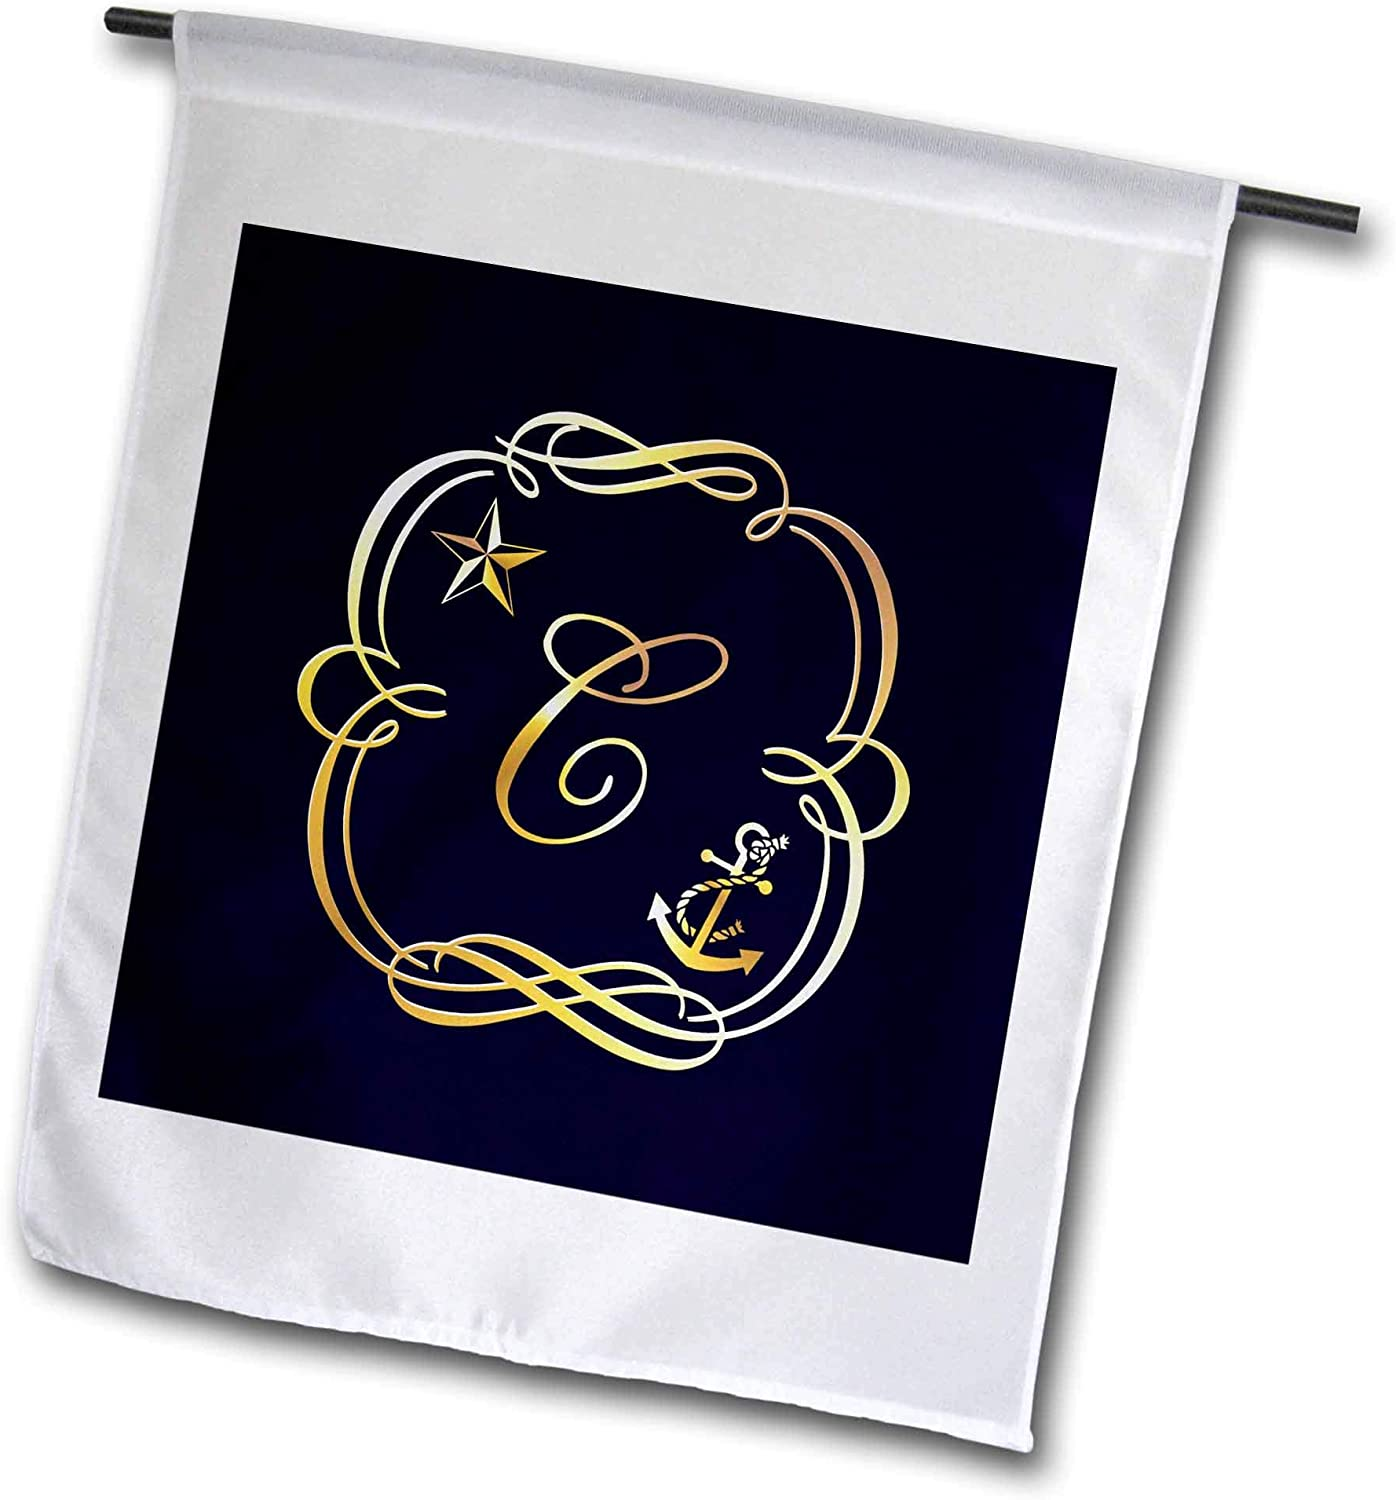 3dRose Russ Billington Monograms-Star and Anchor Letter C - Image of Nautical Monogram Letter C with Star and Anchor- not foil - 12 x 18 inch Garden Flag (fl_298847_1)